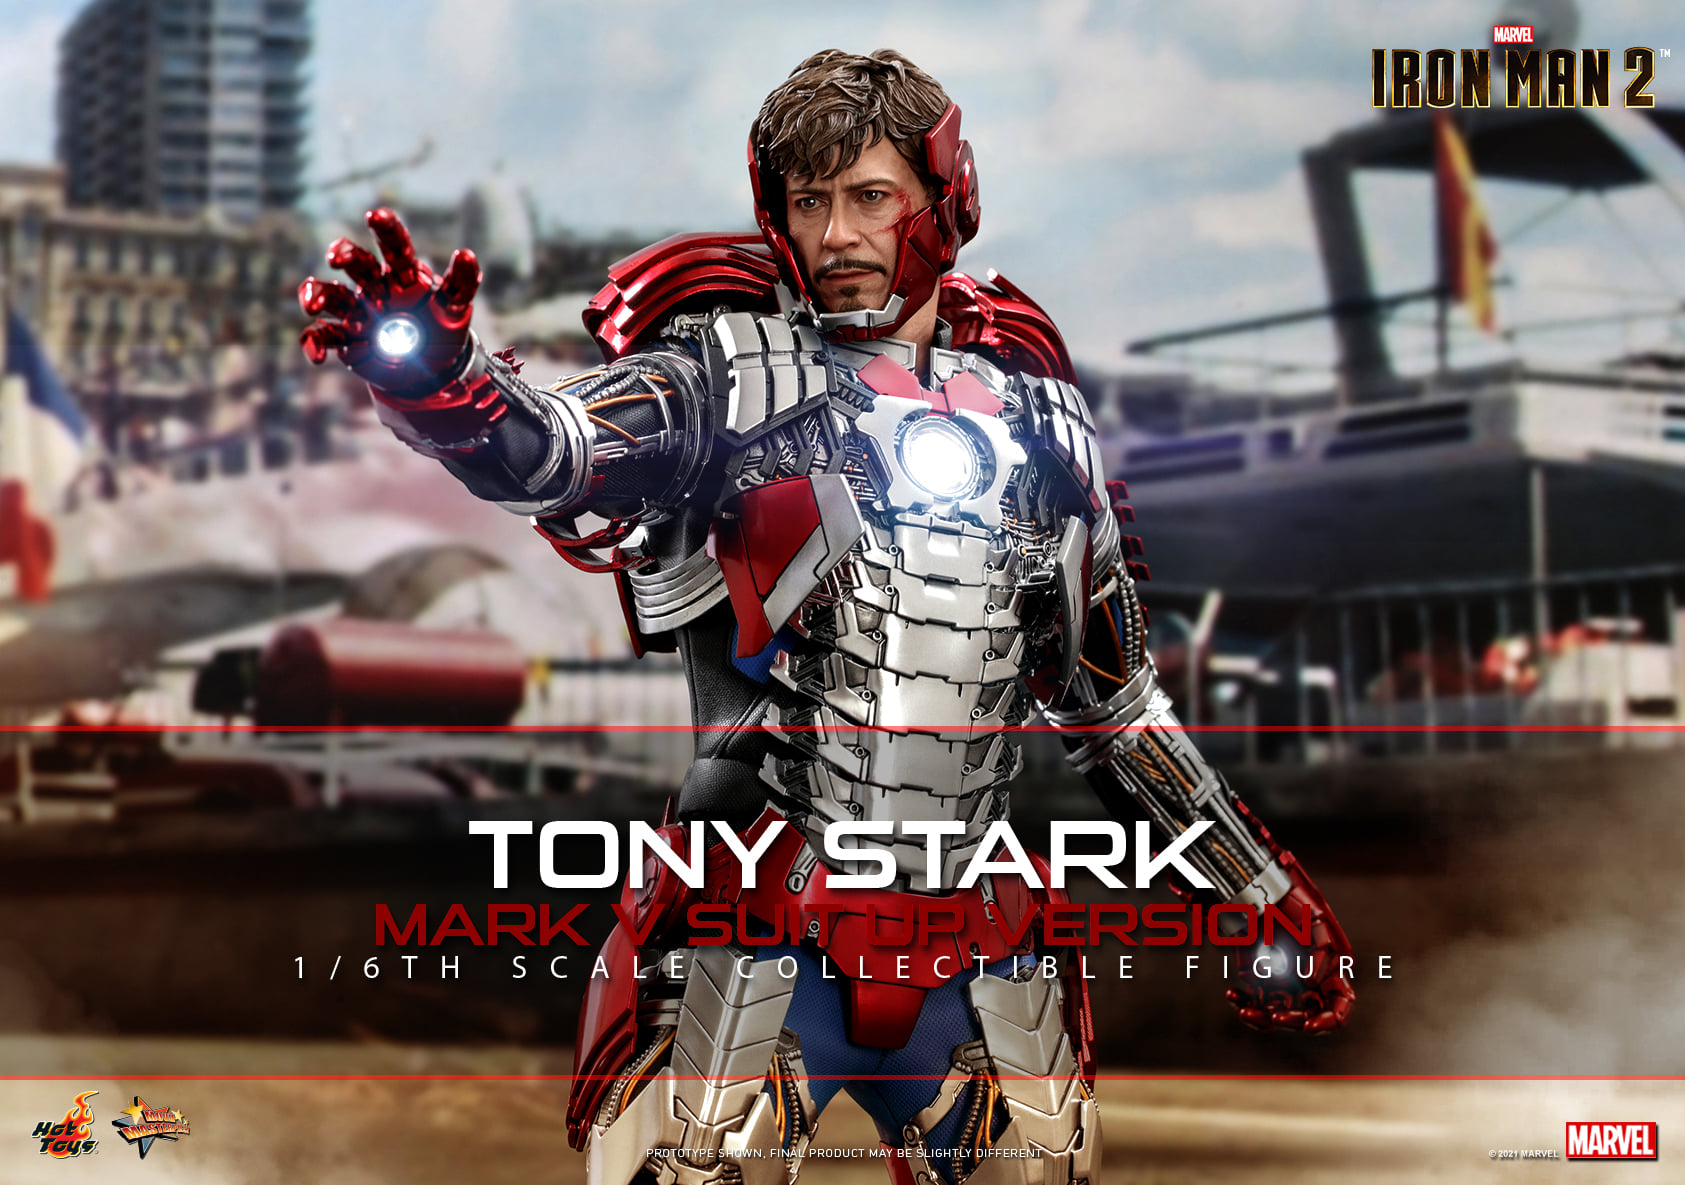 Pre-Order Hot Toys Marvel Iron Man 2 Tony Stark  MK V Figure